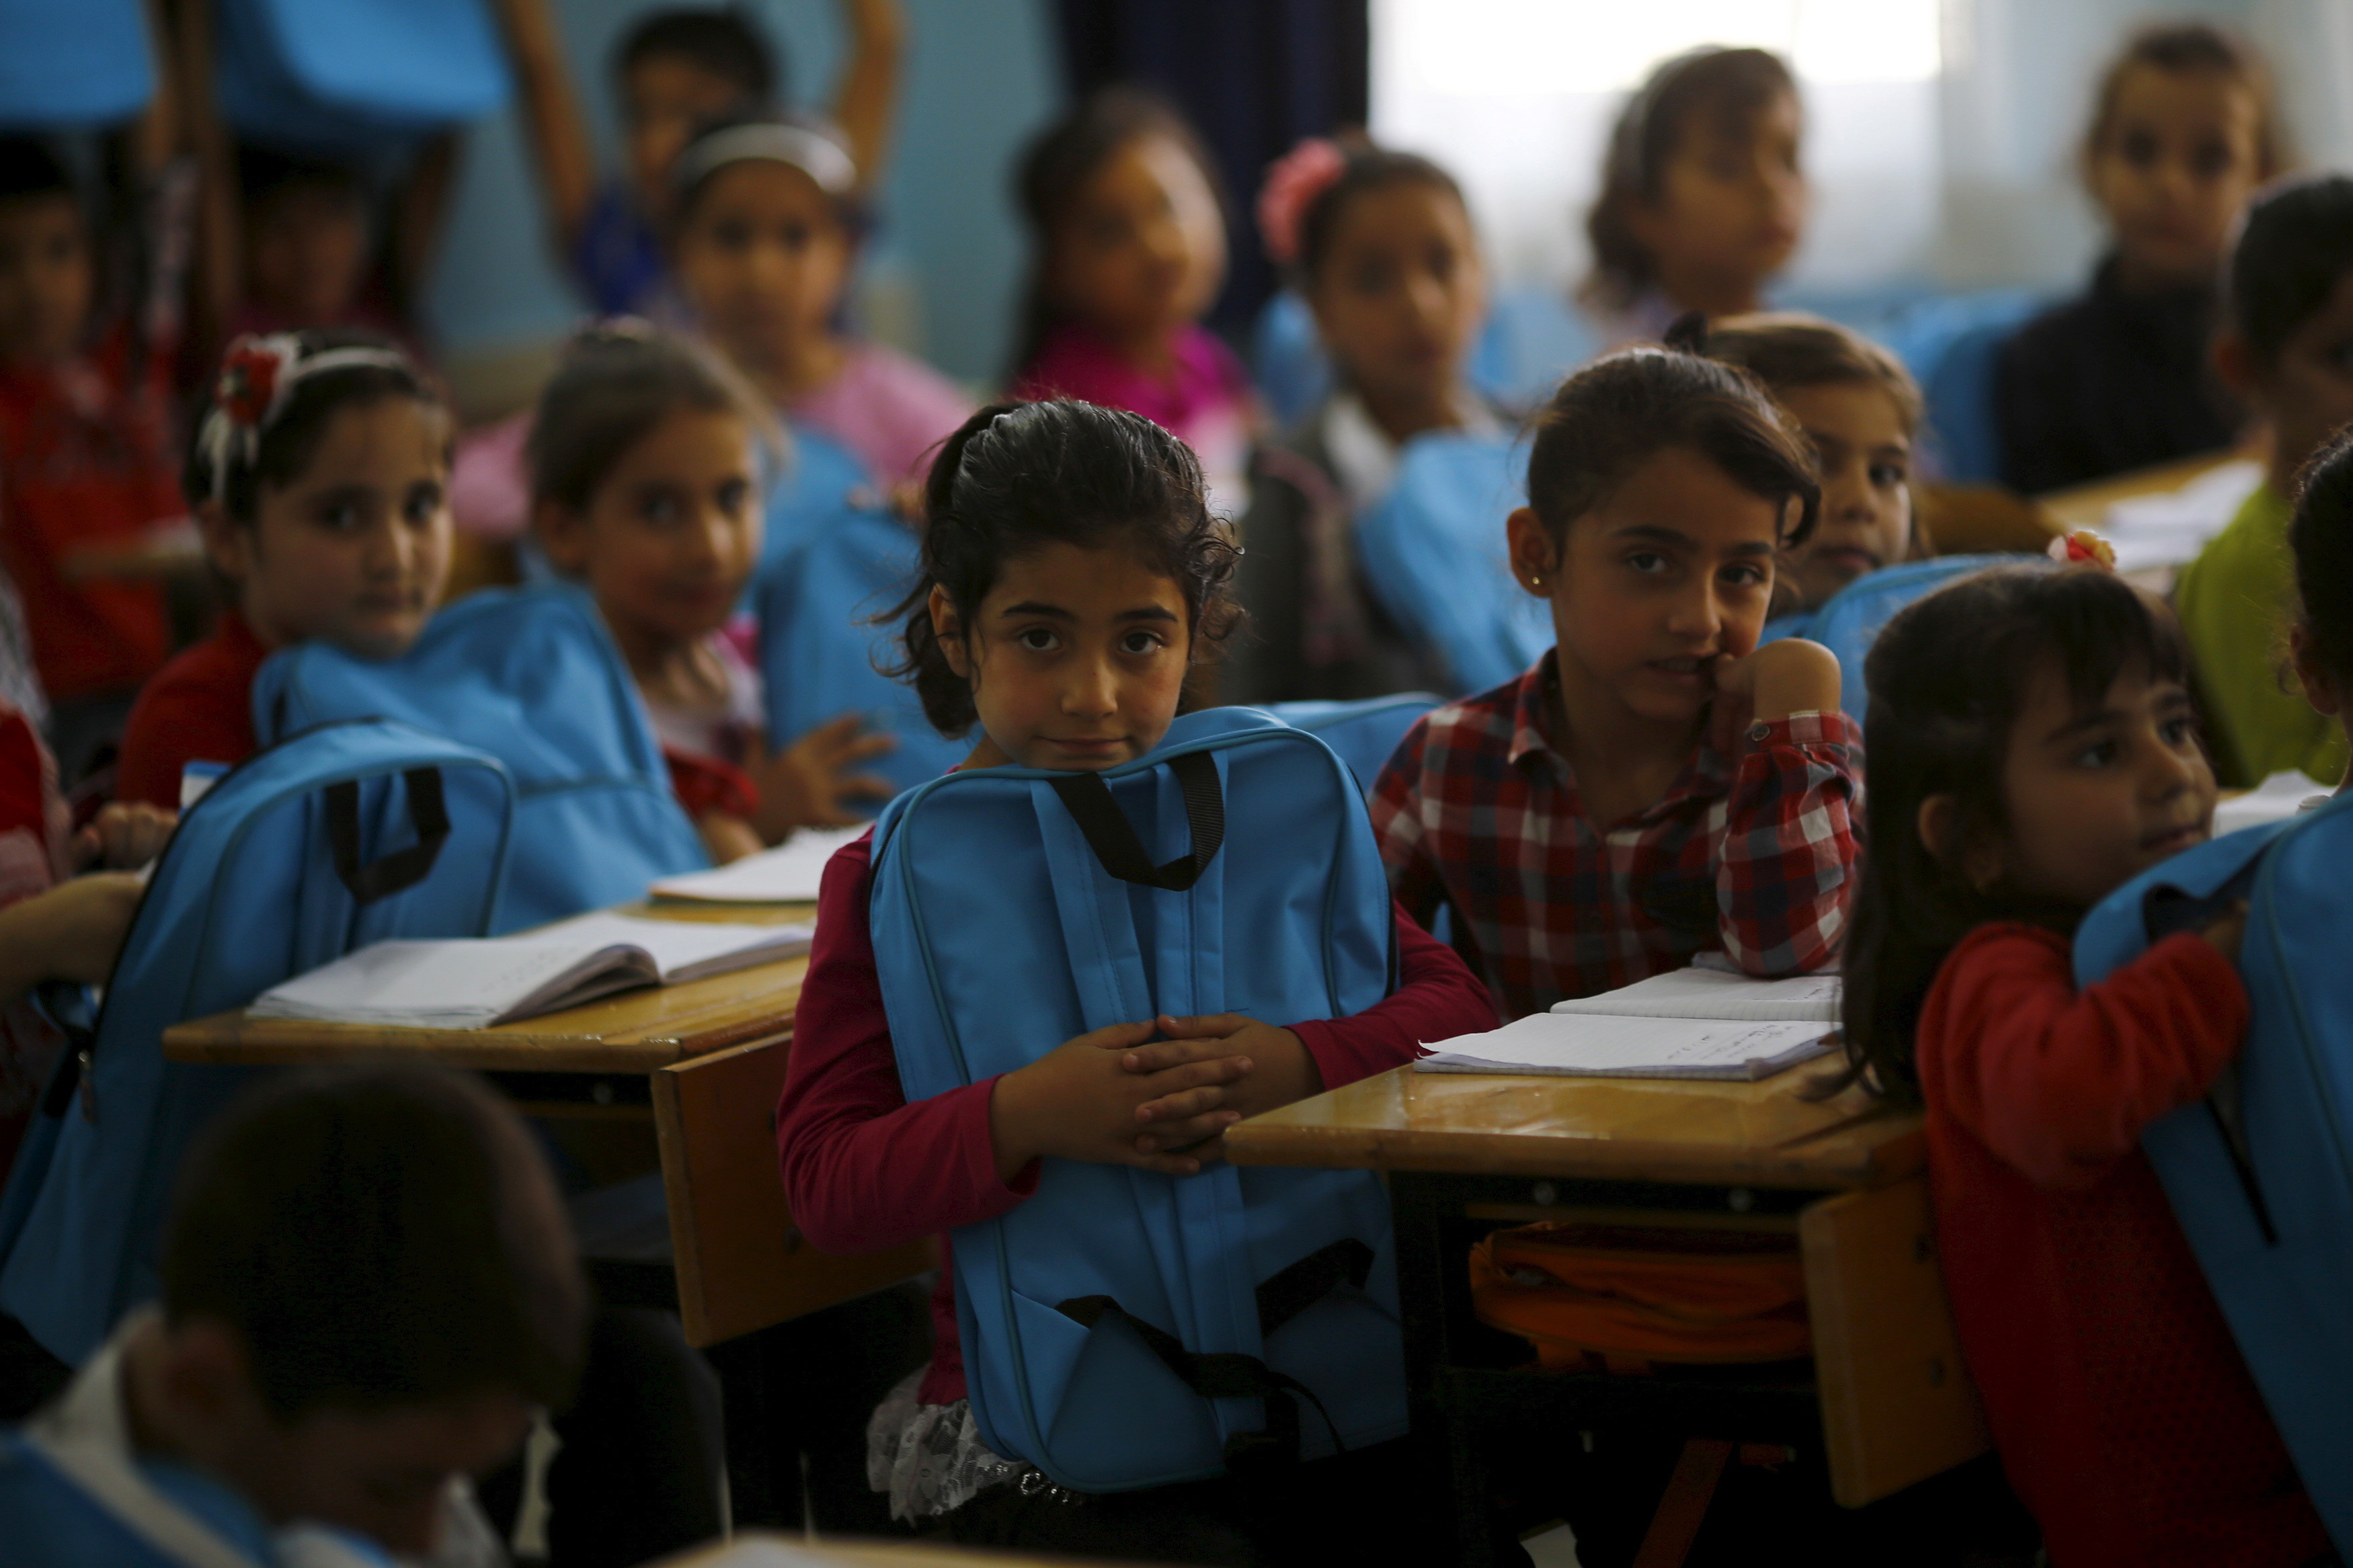 Syrian refugee children are seen during a lesson at Fatih Sultan Mehmet School in Karapurcek district of Ankara, Turkey, October 2, 2015. Out of 640,000 Syrian children in Turkey, 400,000 are not at school, a Turkish official told Reuters on Friday, warning that those who miss out are likely to be exploited by